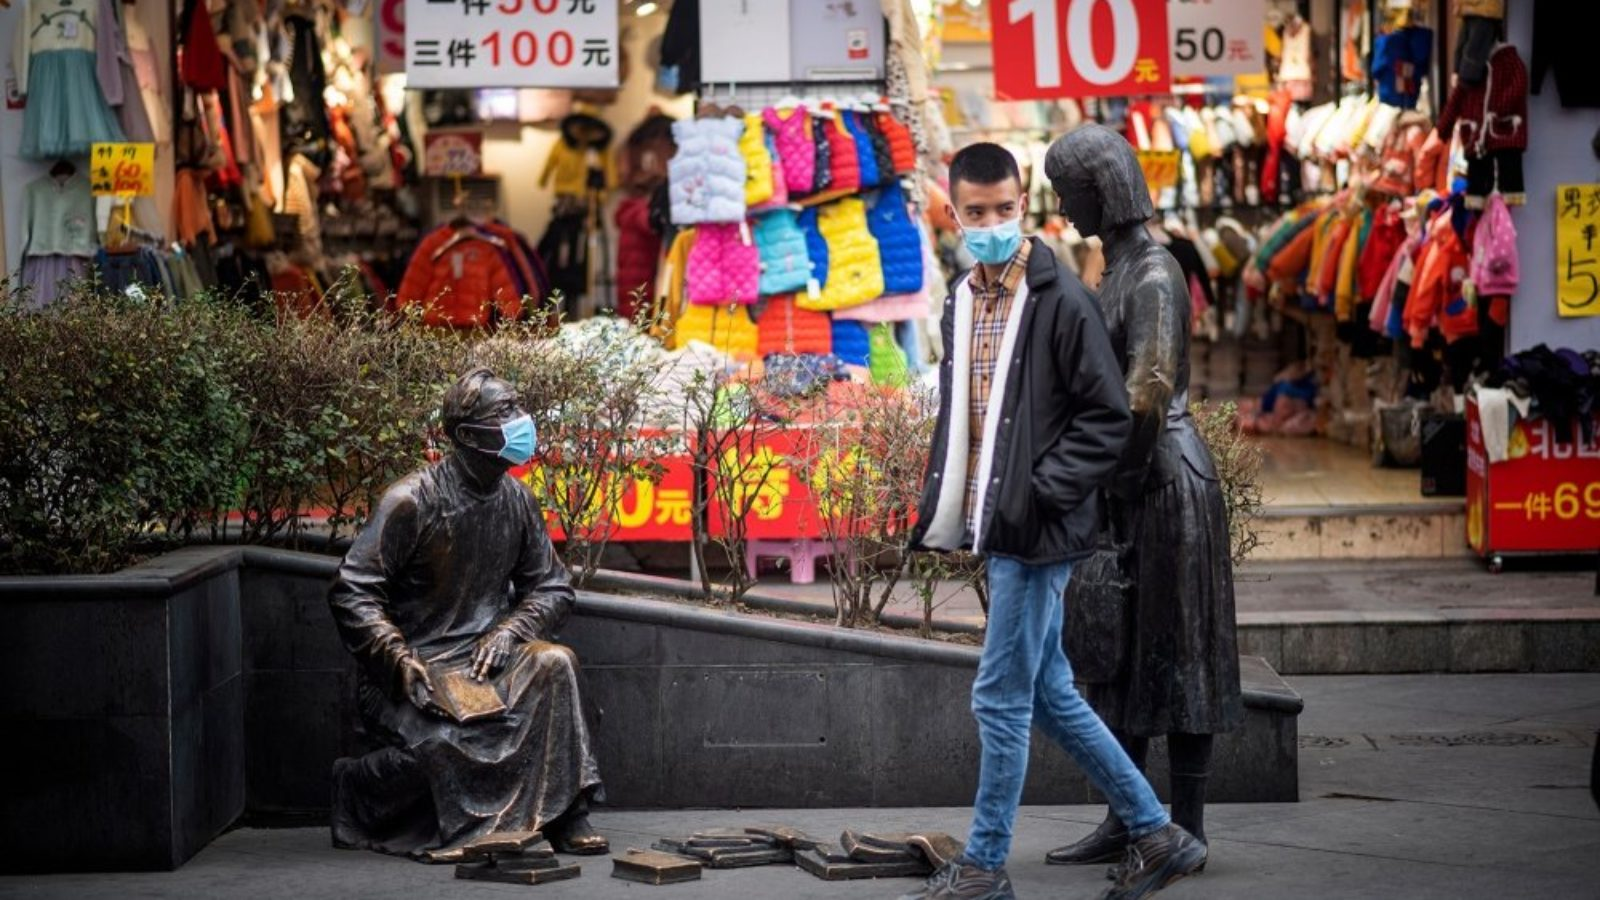 A person wearing a surgical mask walks by a storefront and a statue also wearing a mask.